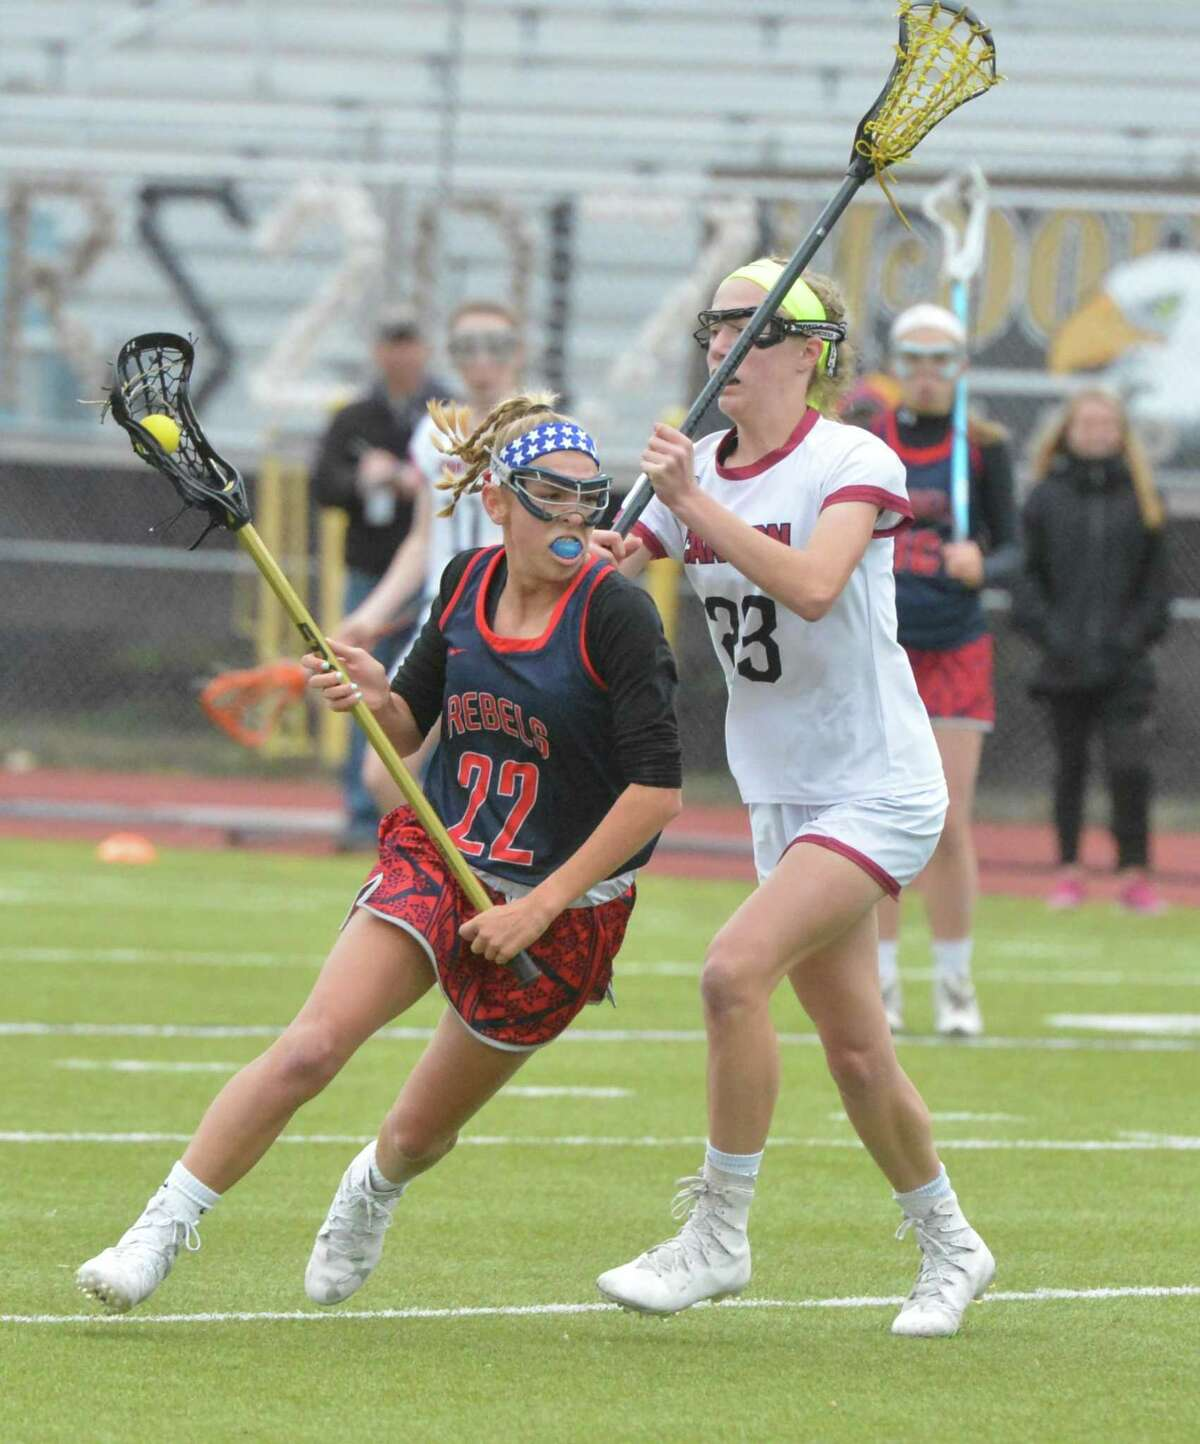 New Fairfield's #22 Daria Bock moves the ball vs. Canton during Class S semifinal playoff action on Tuesday June 6, 2017 in Trumbull Conn.